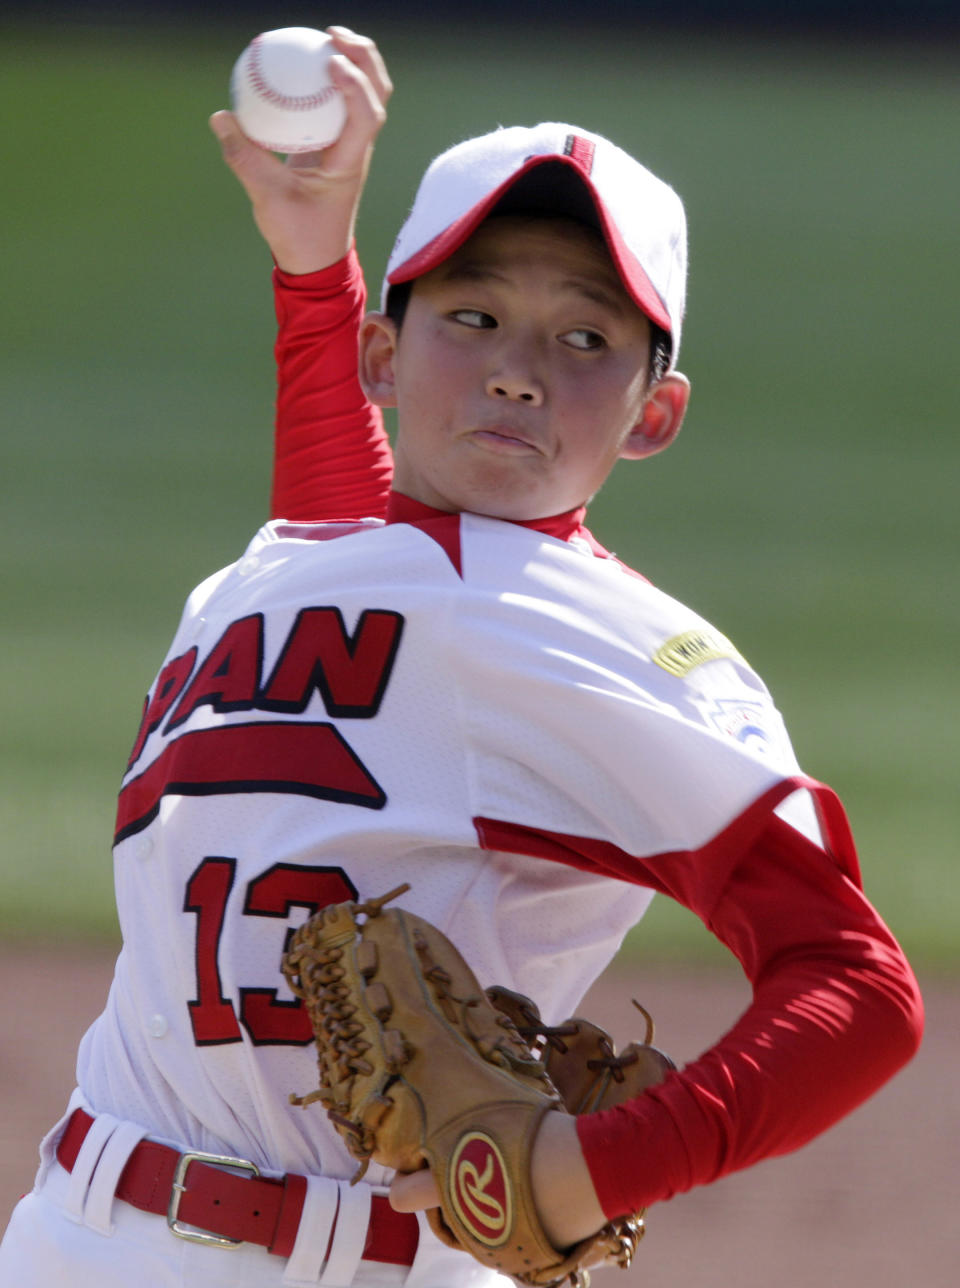 Hamamatsu City, Japan pitcher Shoto Totsuka delivers in the first inning of a baseball game against Langley, British Columbia during a baseball game at the Little League World Series in South Williamsport, Pa.,Tuesday, Aug. 23, 2011.(AP Photo/Gene J. Puskar)